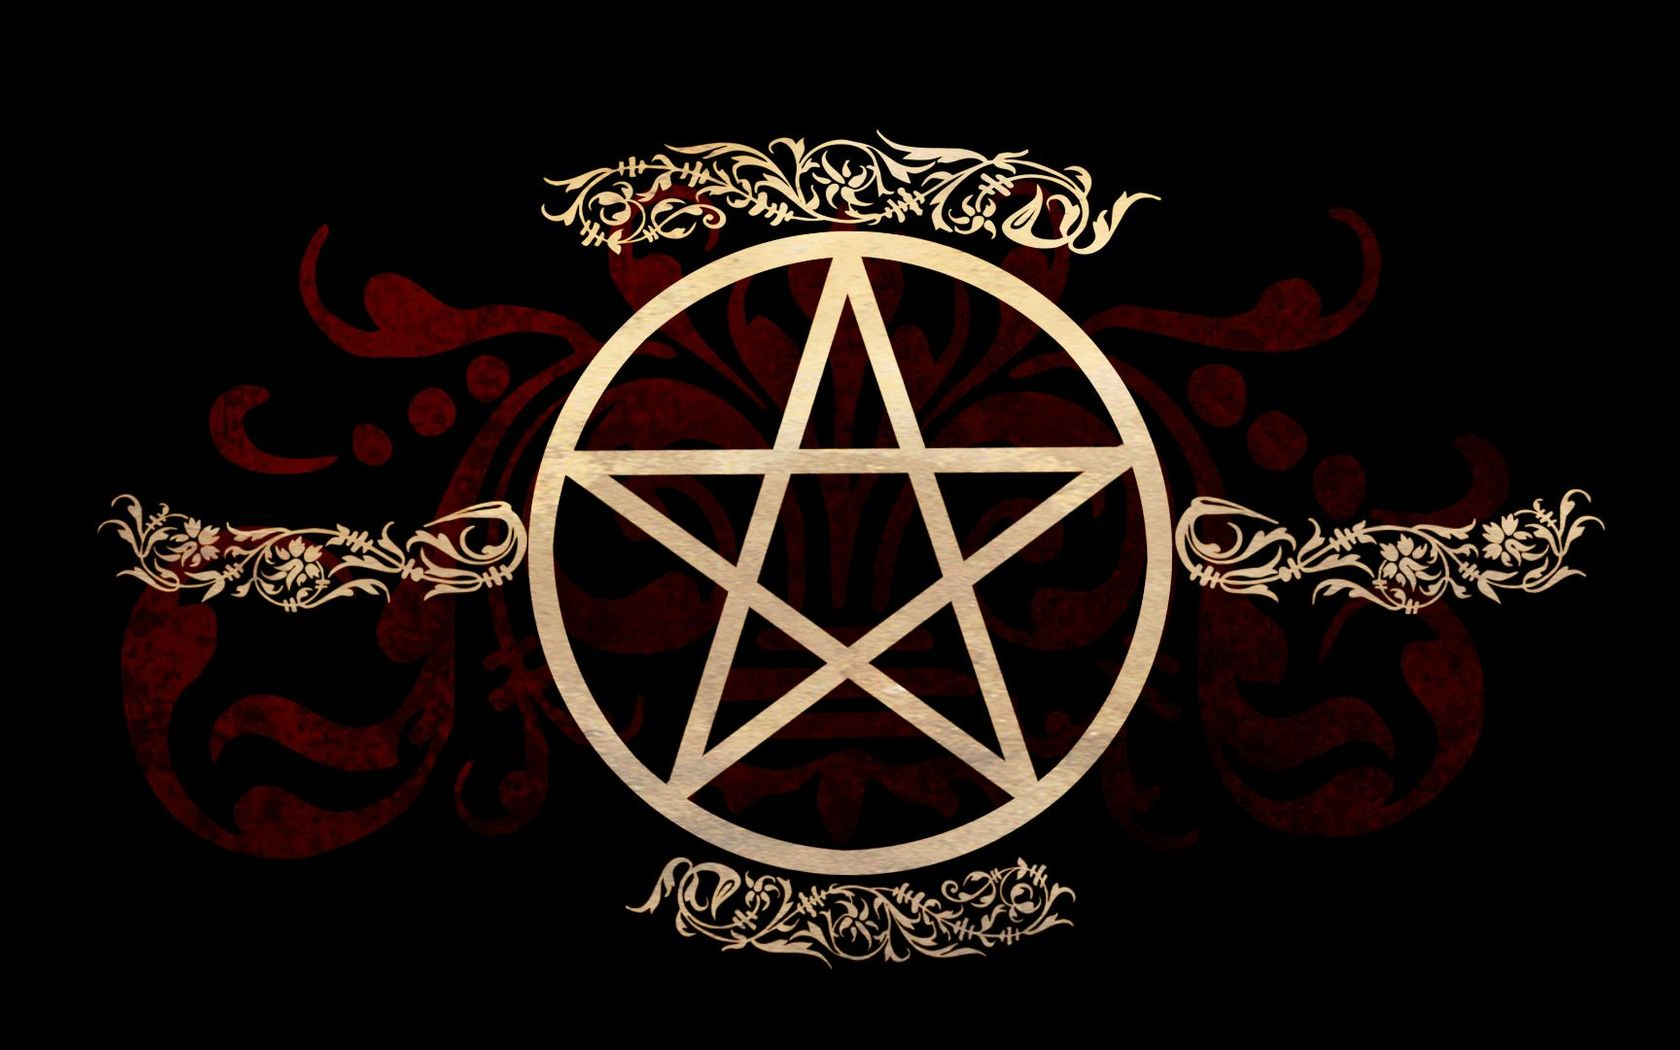 Pentagram wallpaper 18403 1680x1050